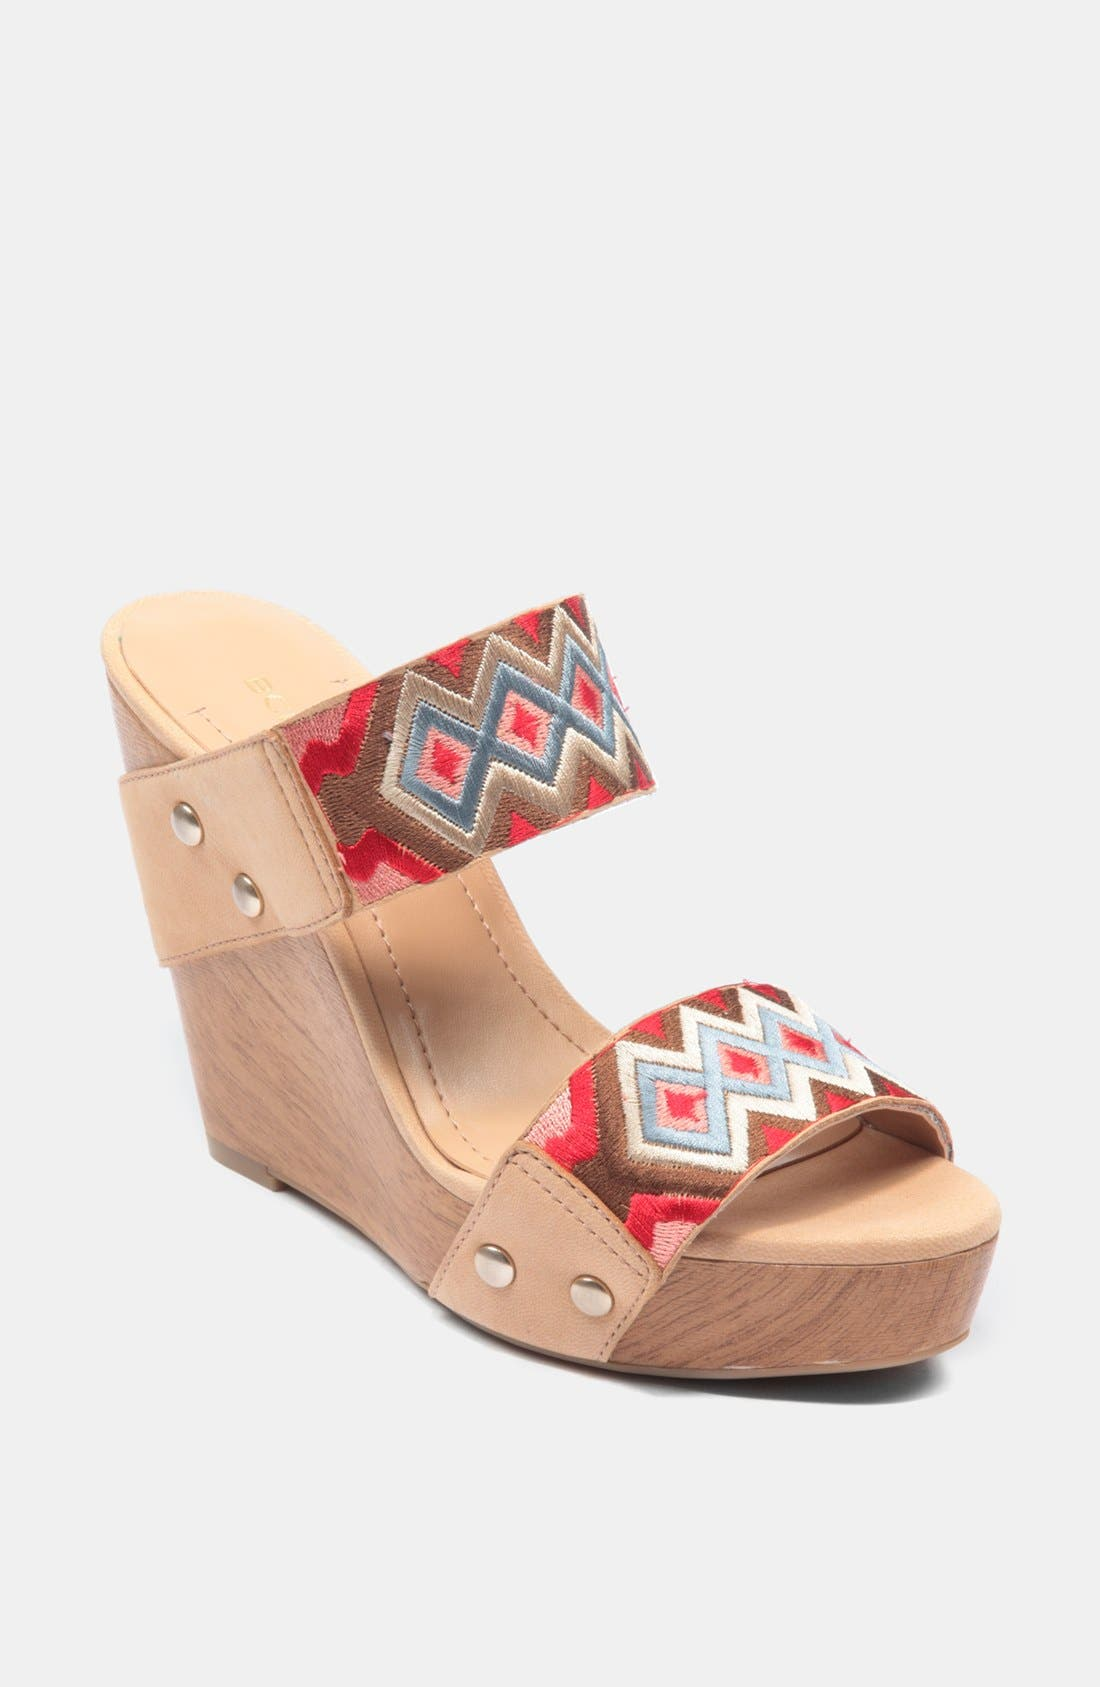 Alternate Image 1 Selected - BCBGeneration 'Carmyn' Sandal